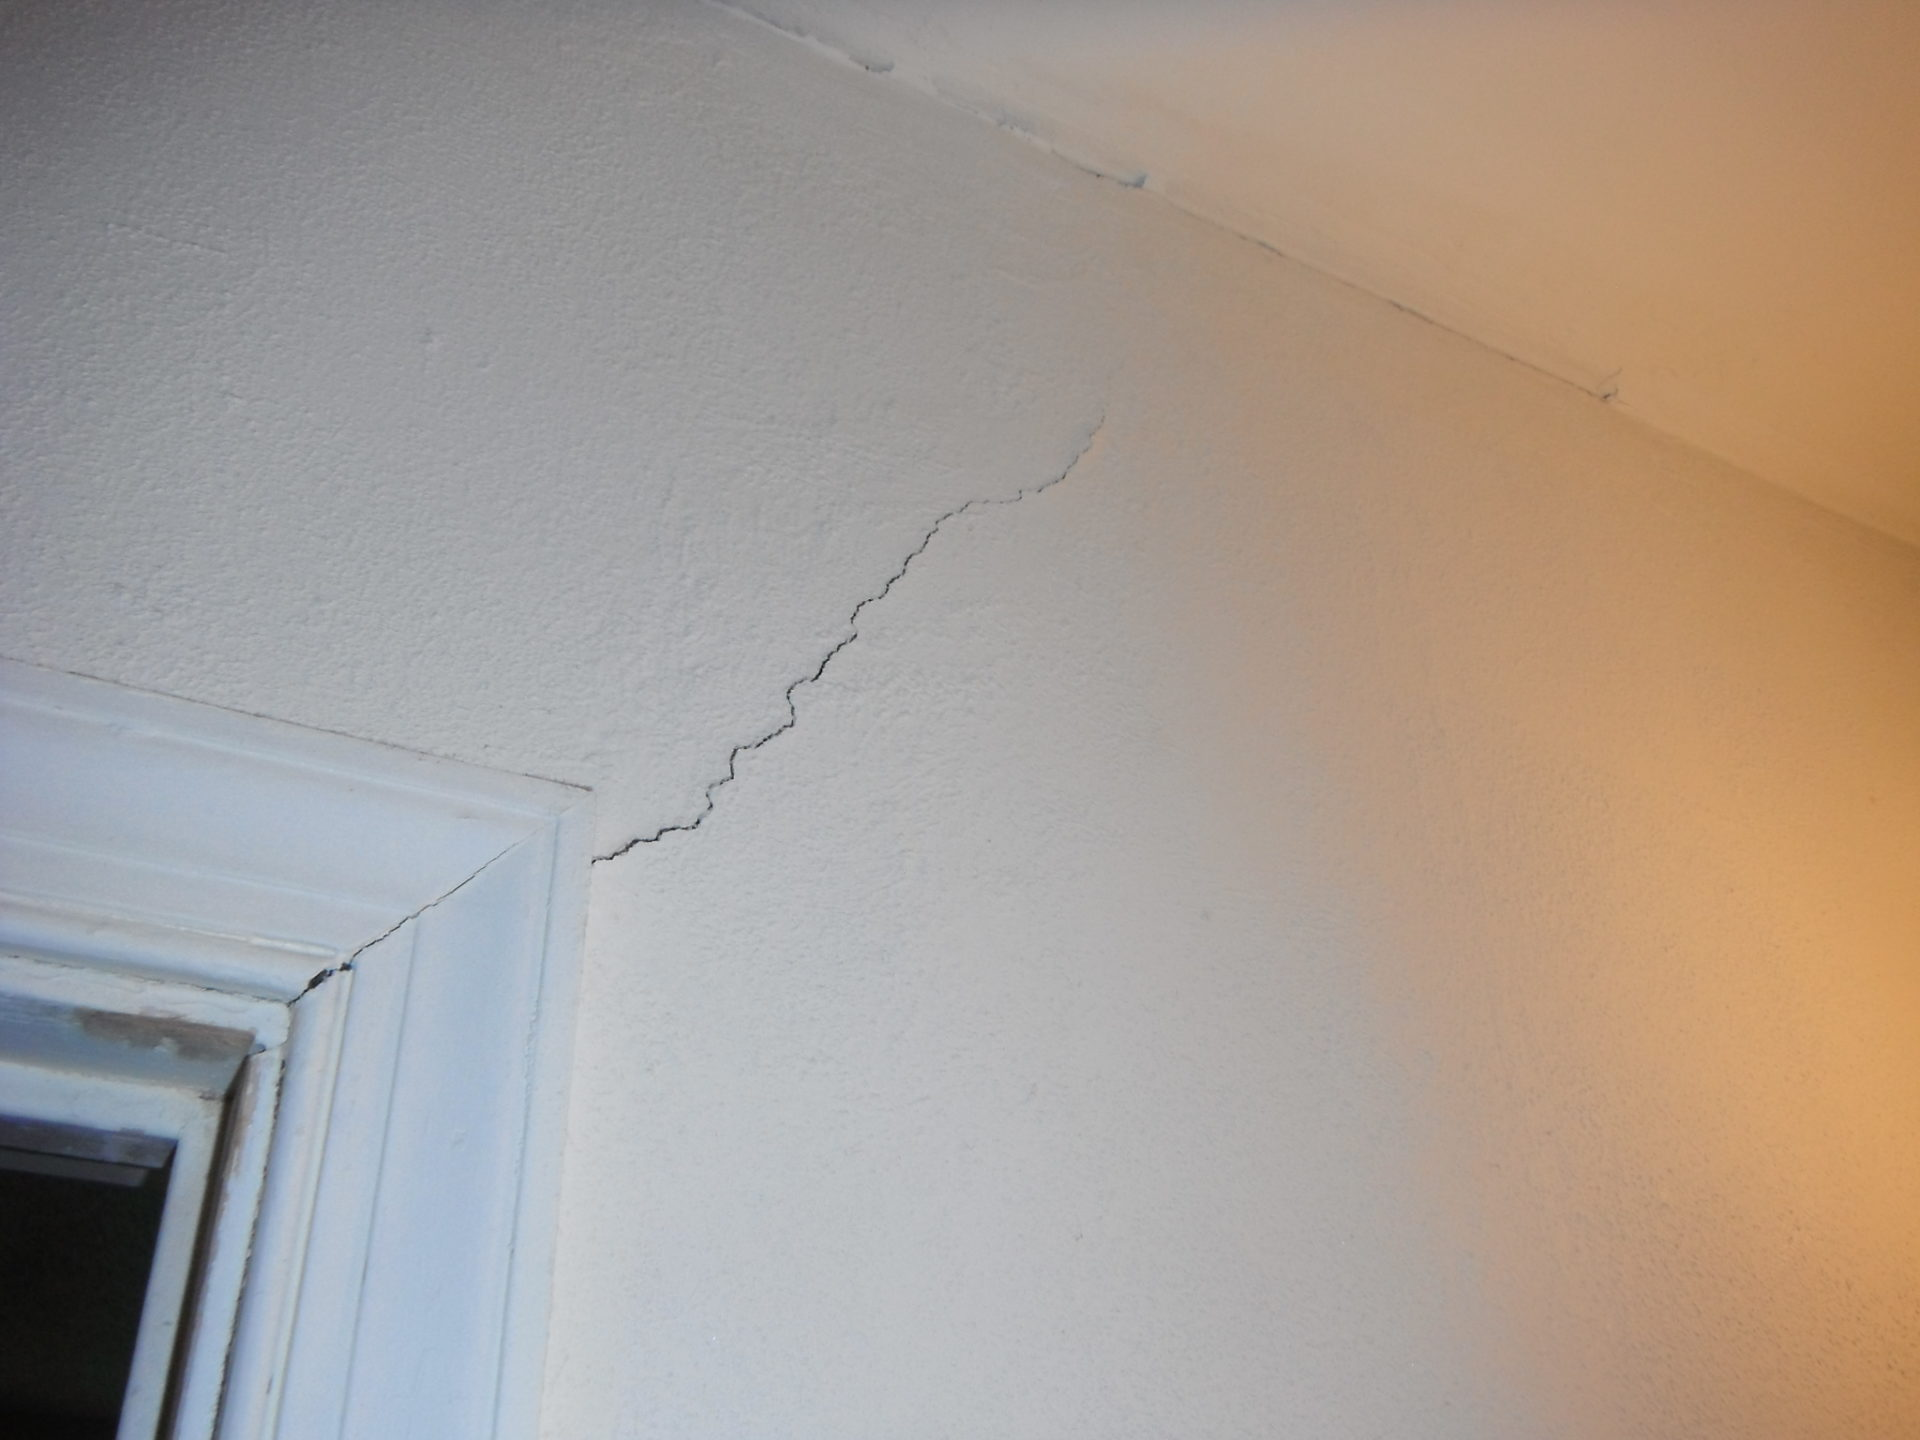 hair line drywall crack due to foundation issues